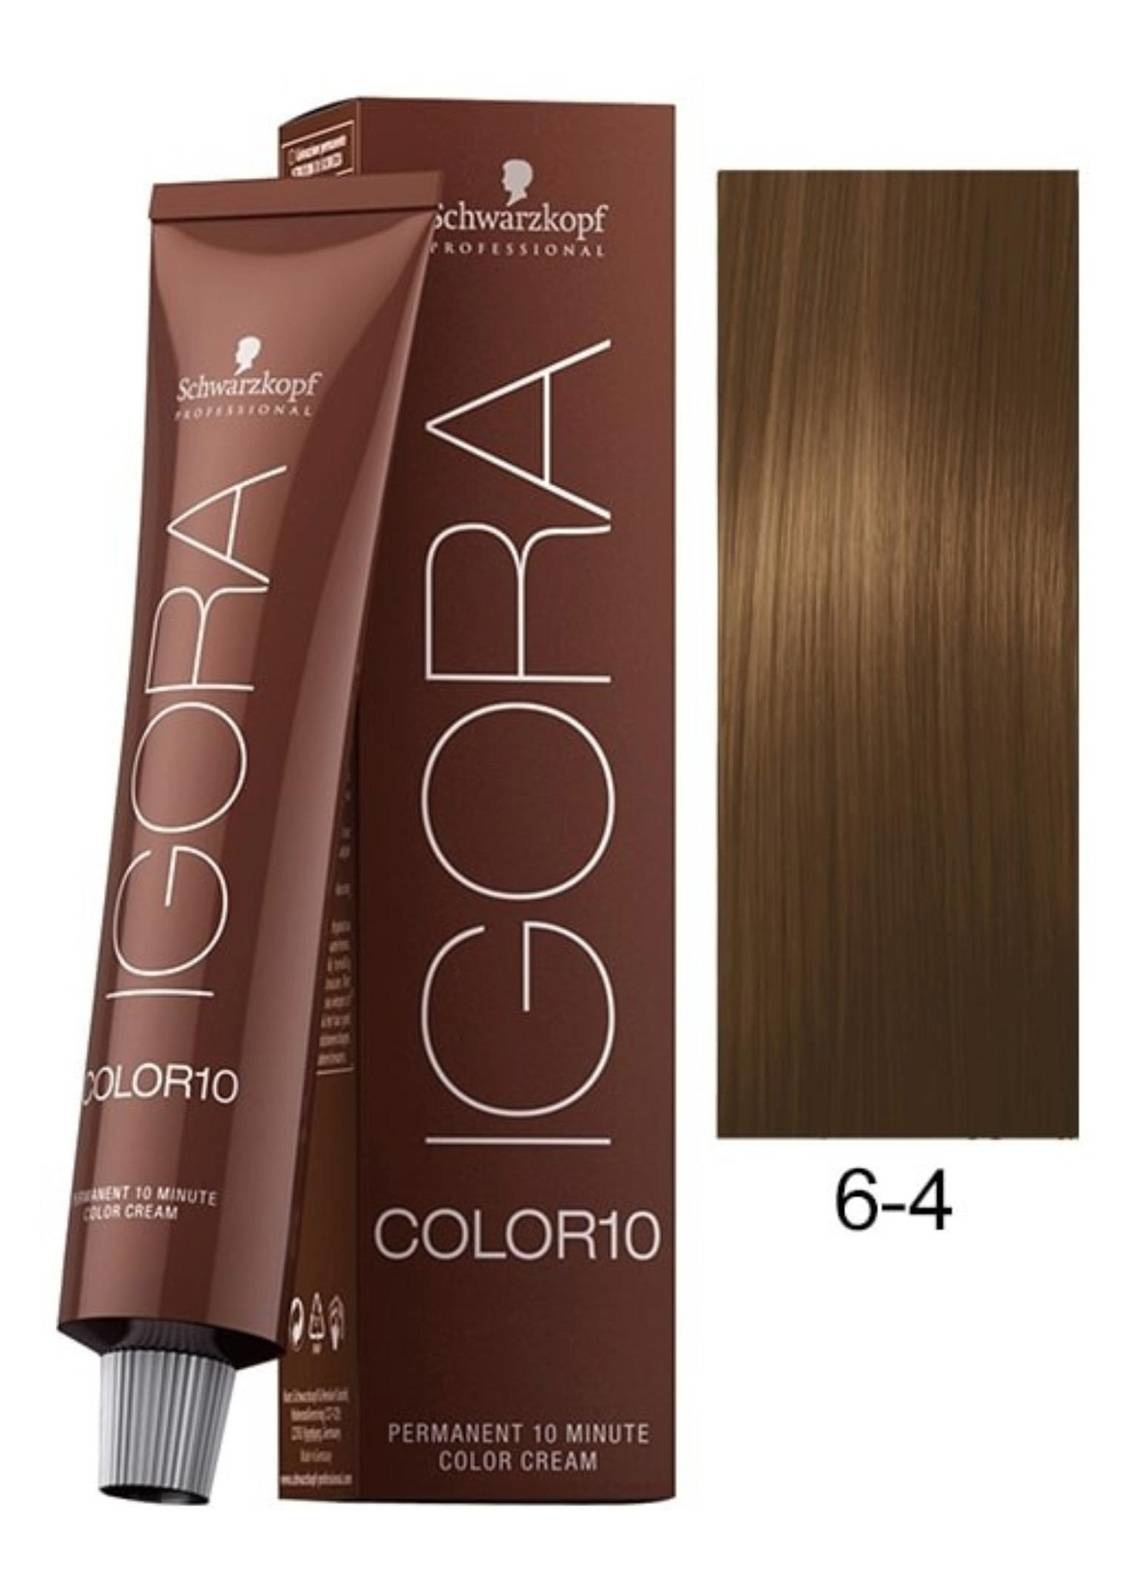 6-4 Dark Blonde Beige 60g - Igora Royal by Schwarzkopf